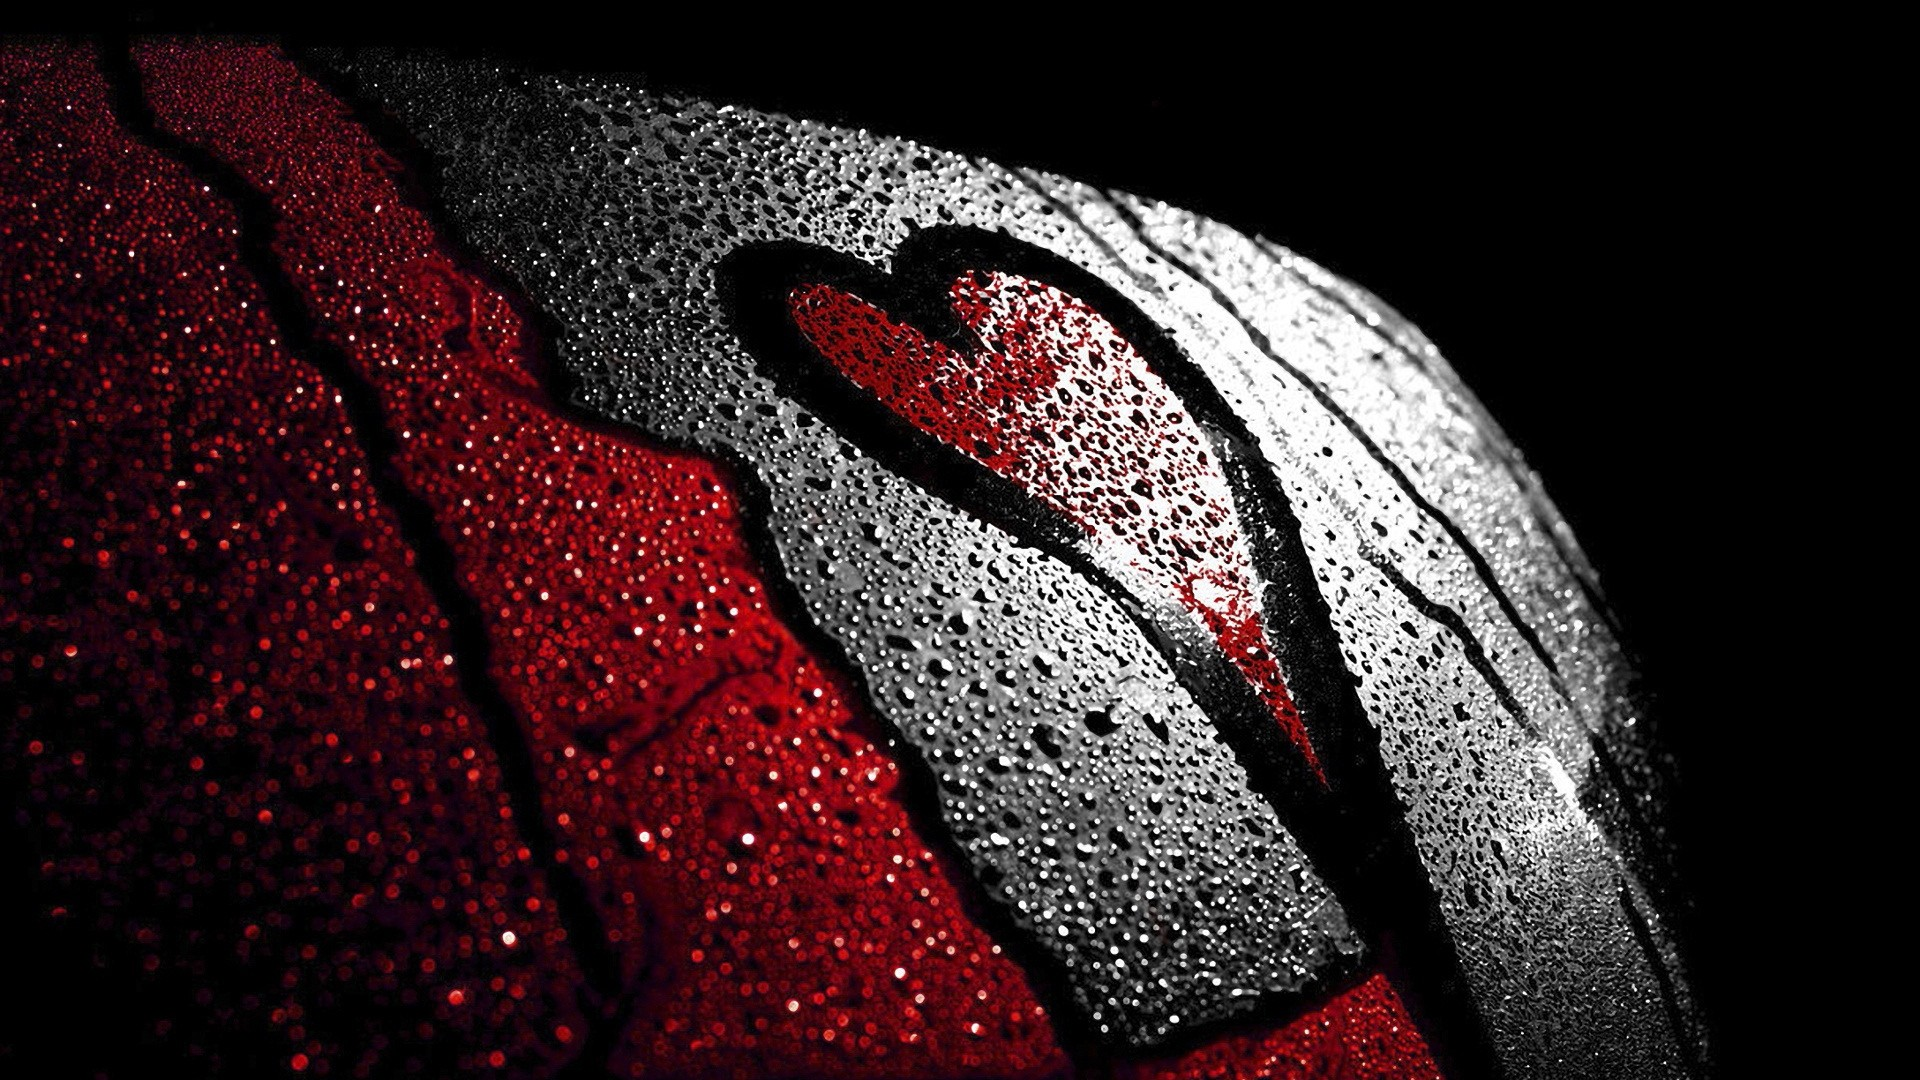 Res: 1920x1080, Love Red Black Image HD Wallpaper